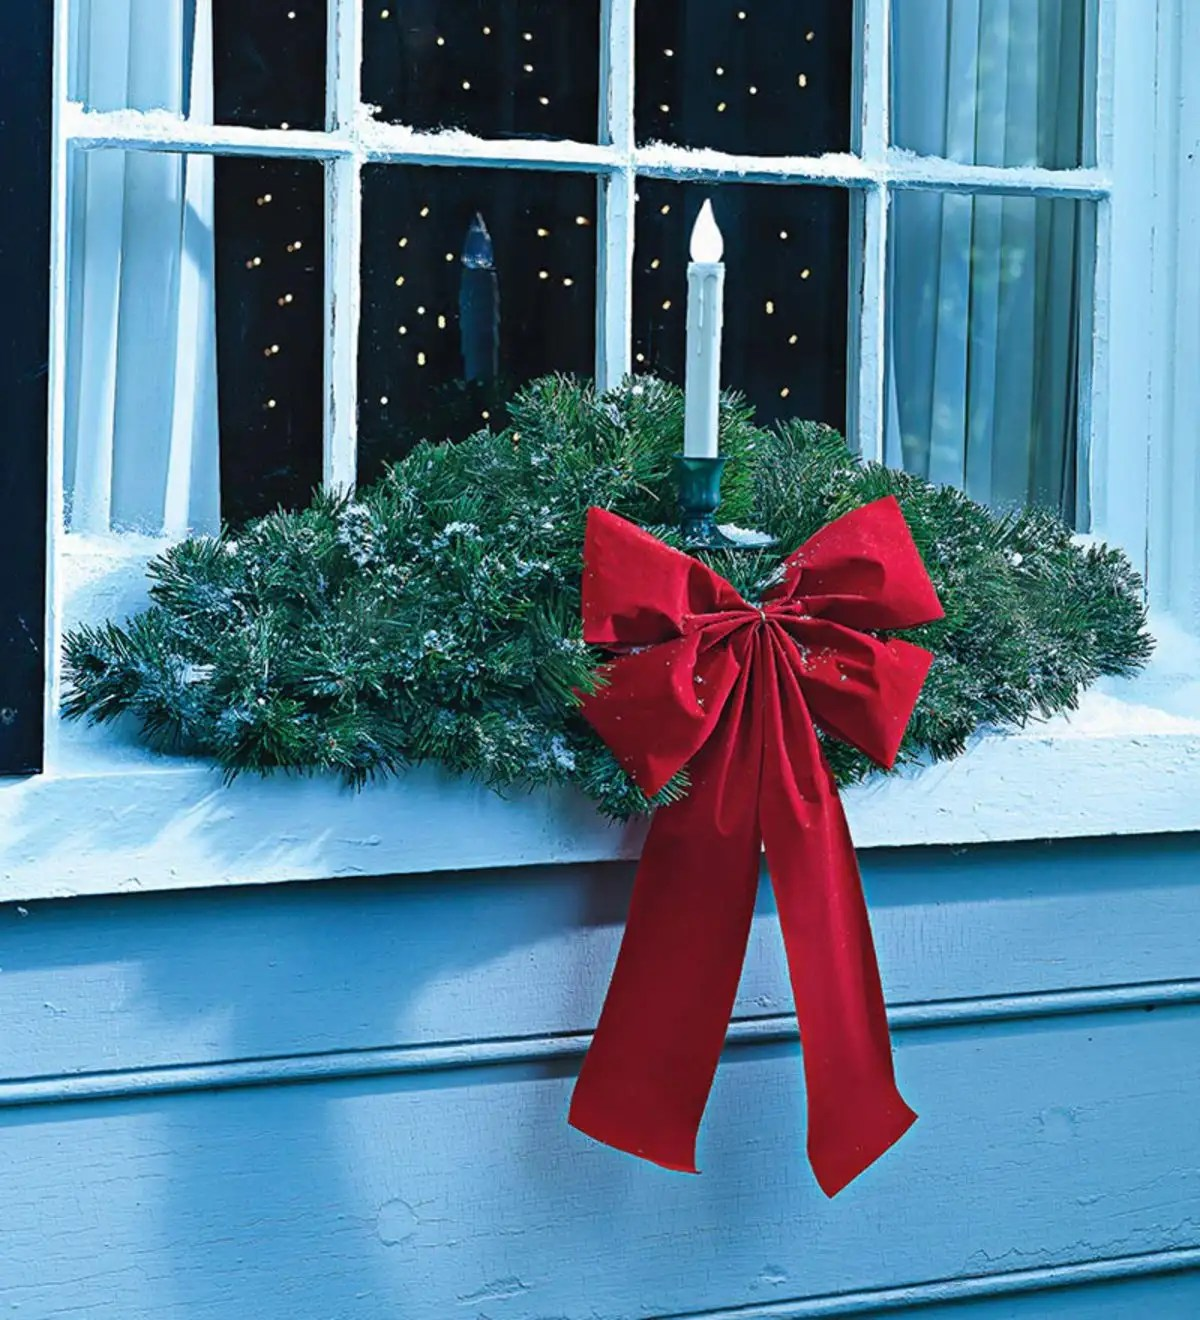 Battery Operated Christmas Decorations Windows